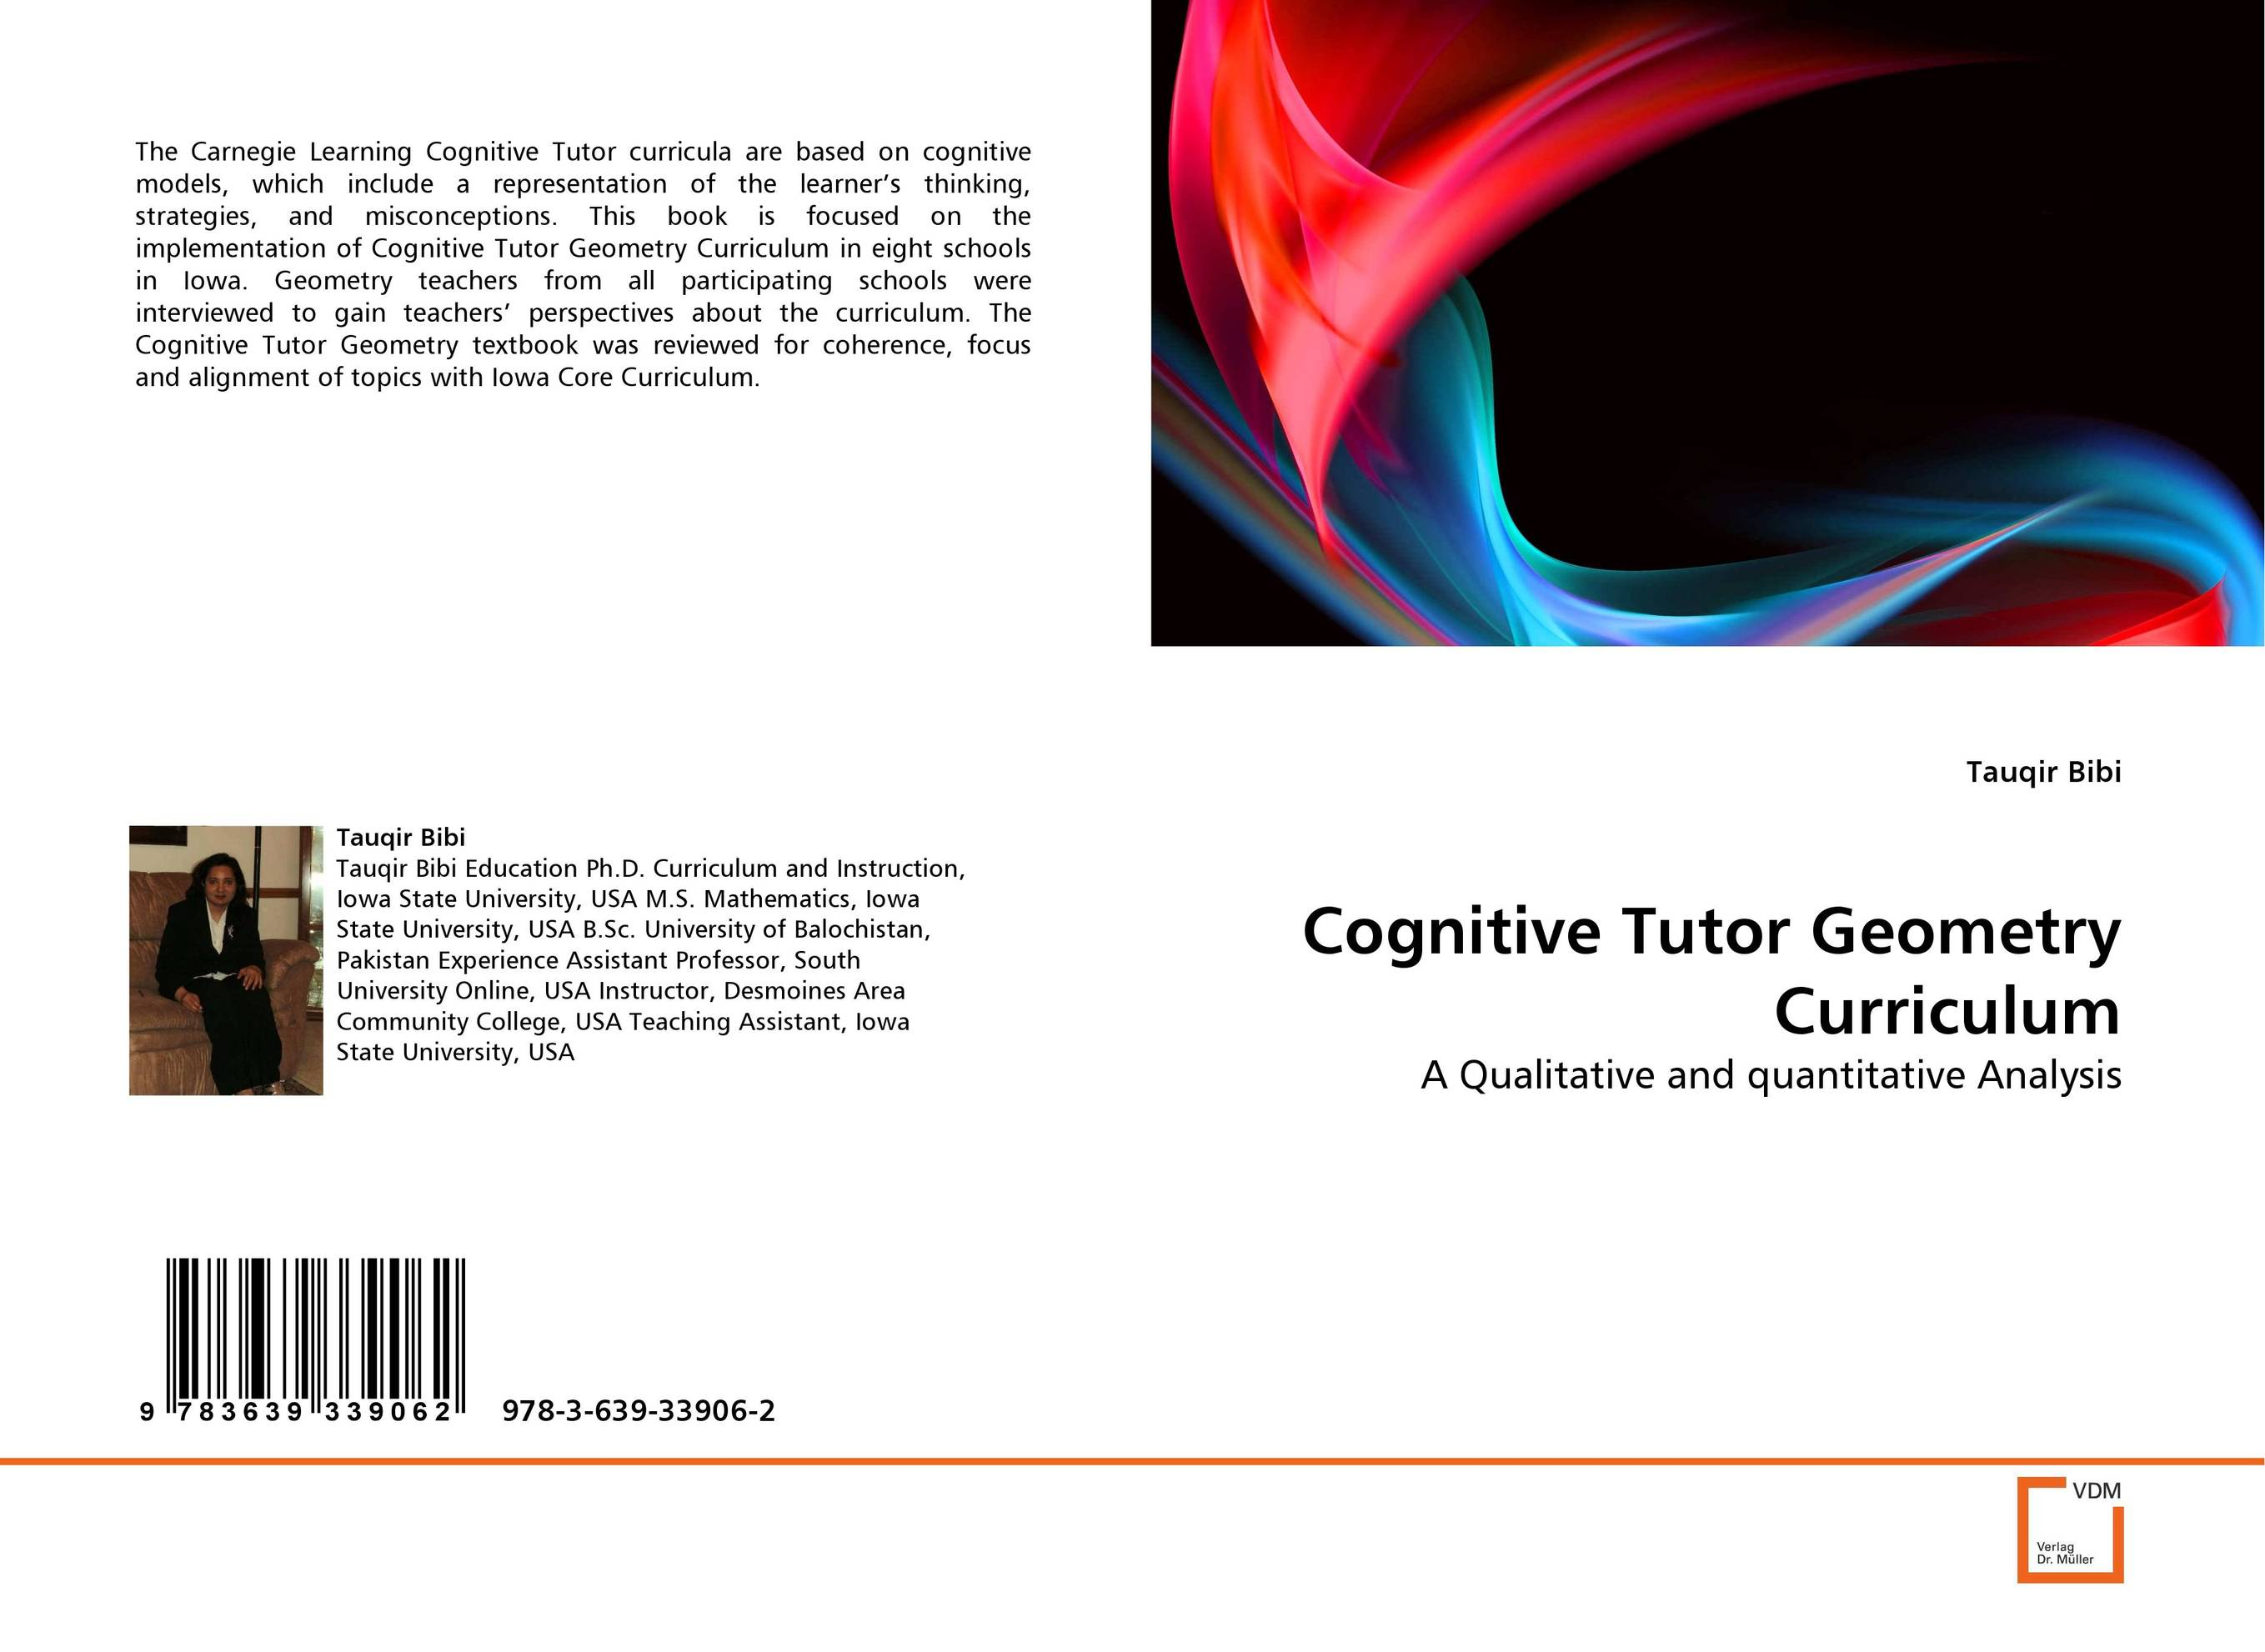 Cognitive Tutor Geometry Curriculum cognitive mechanisms and individual strategies